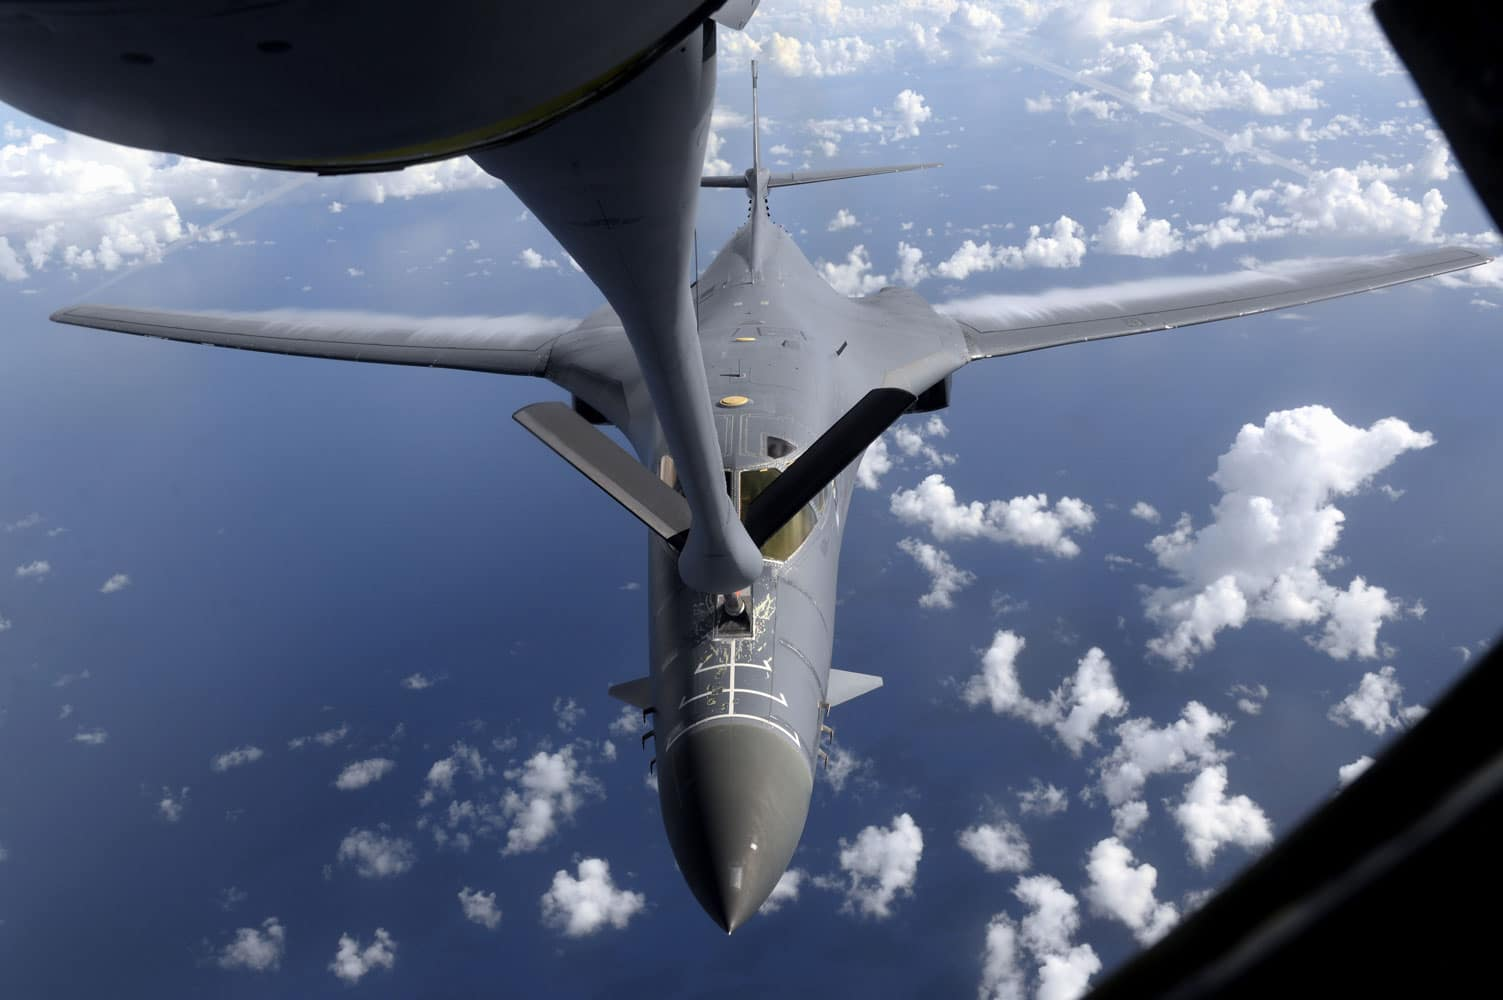 A U.S. Air Force B-1B Lancer, assigned to the 37th Expeditionary Bomb Squadron, deployed from Ellsworth Air Force Base (AFB), S.D., refuels over the South Pacific.